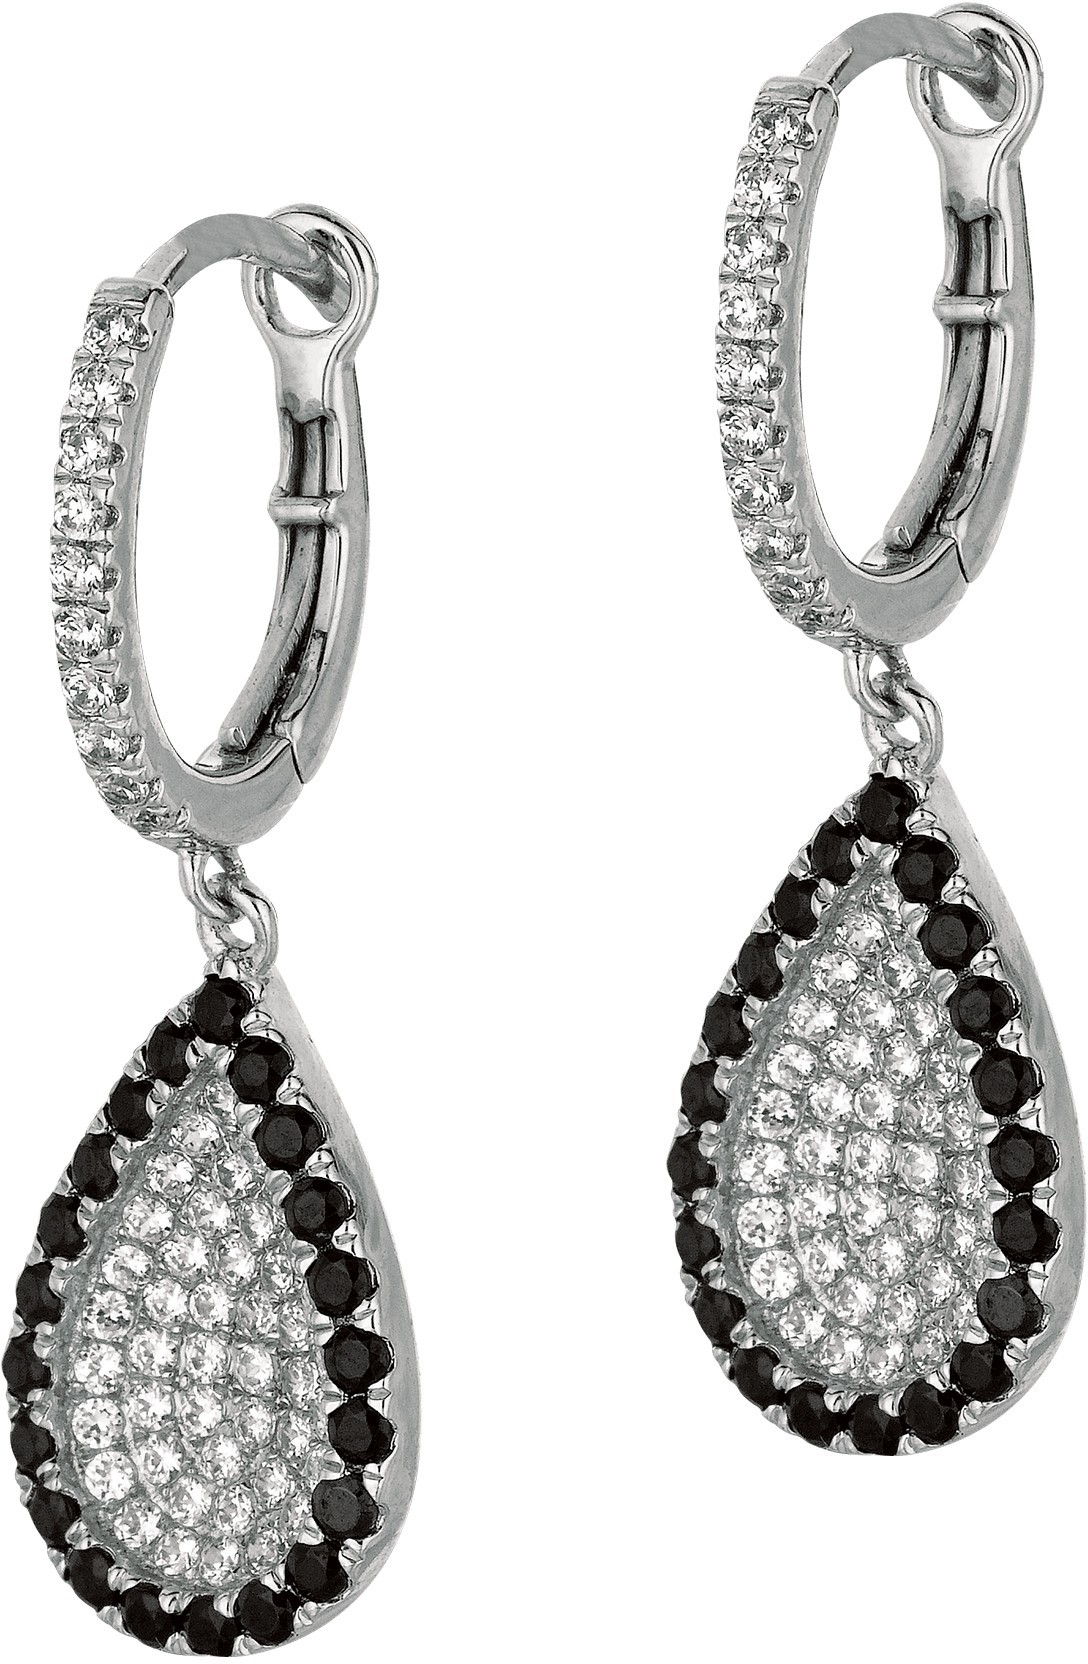 Silver Rhodium Plated Shiny Fancy Tear Drop Earrings w/ Black & White Cubic Zirconia (CZ) - DISCONTINUED